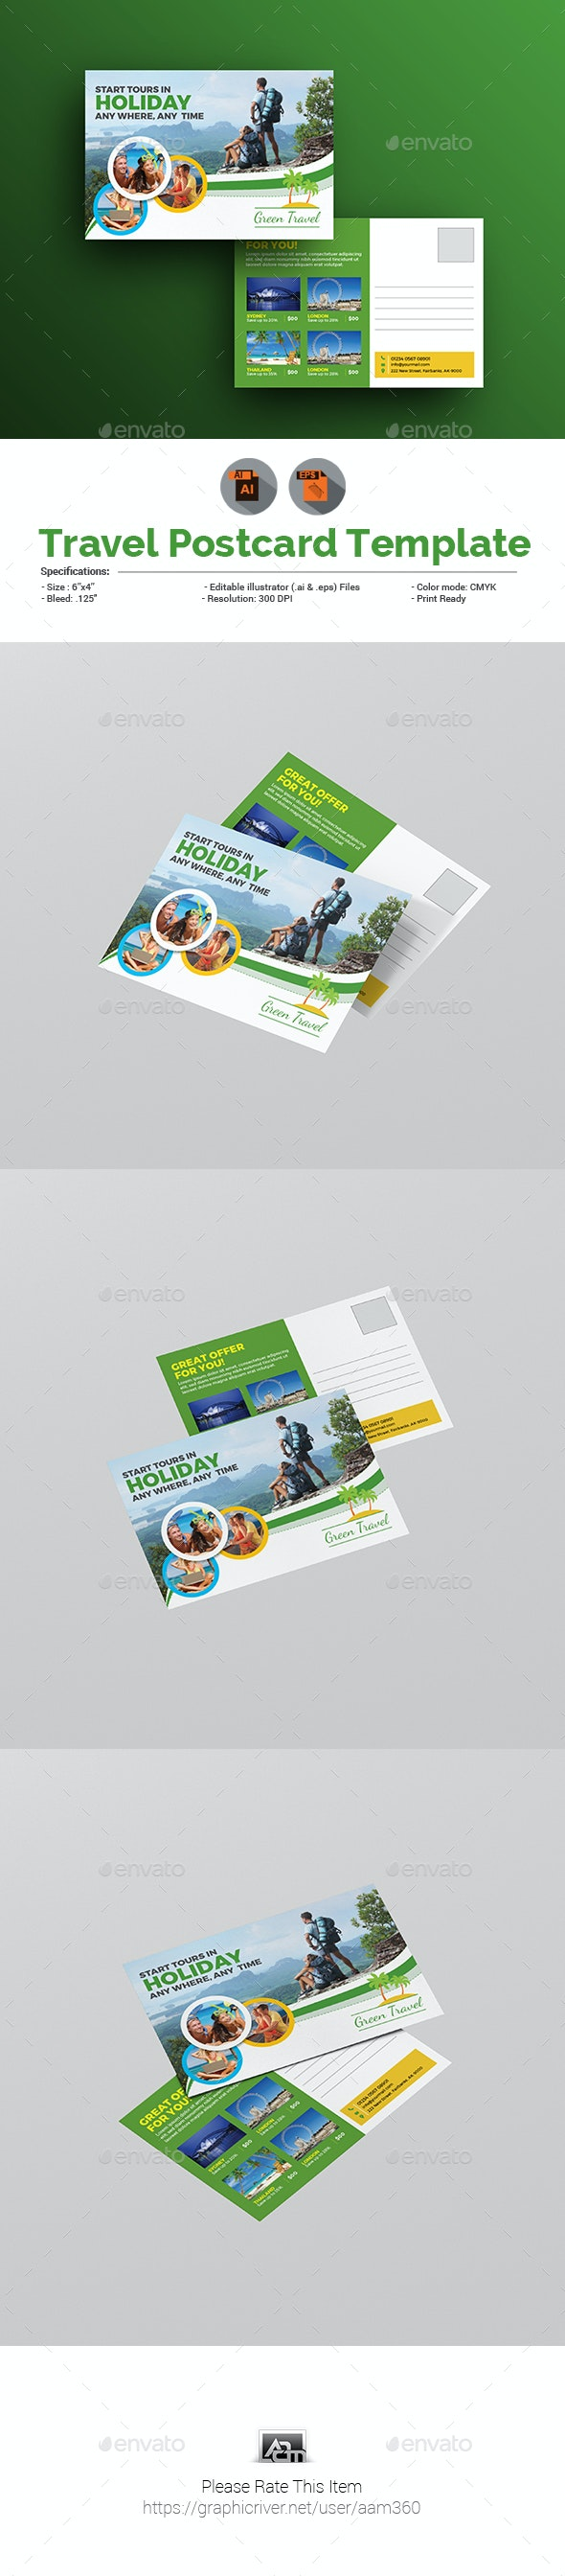 Holiday Tour & Travel Postcard Template - Cards & Invites Print Templates